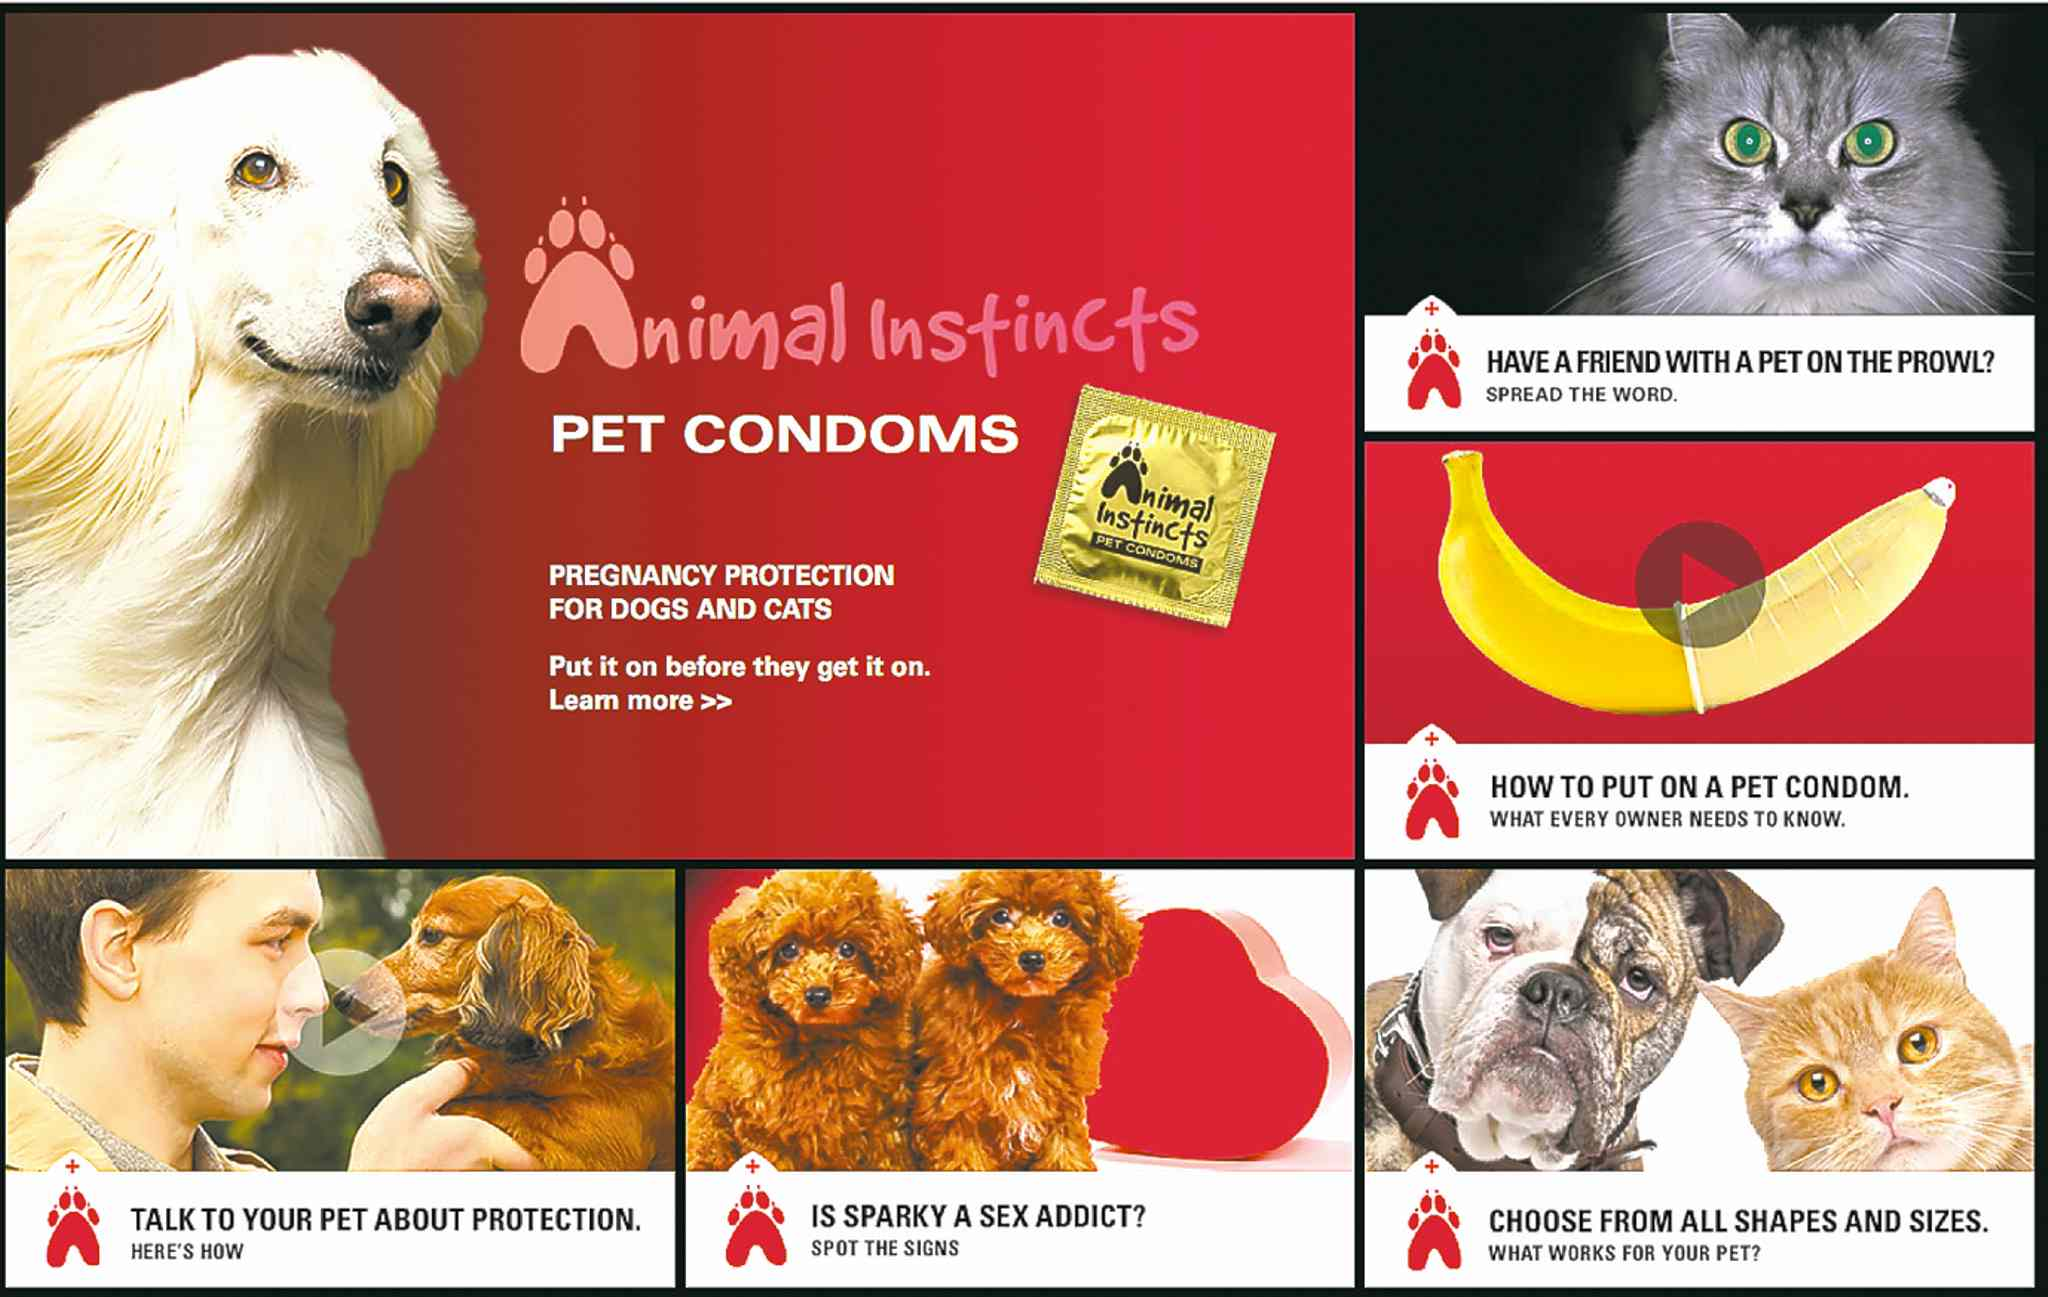 The San Francisco SPCA devised a fake 'Pet Condoms' ad campaign to talk about the importance of spaying and neutering pets.